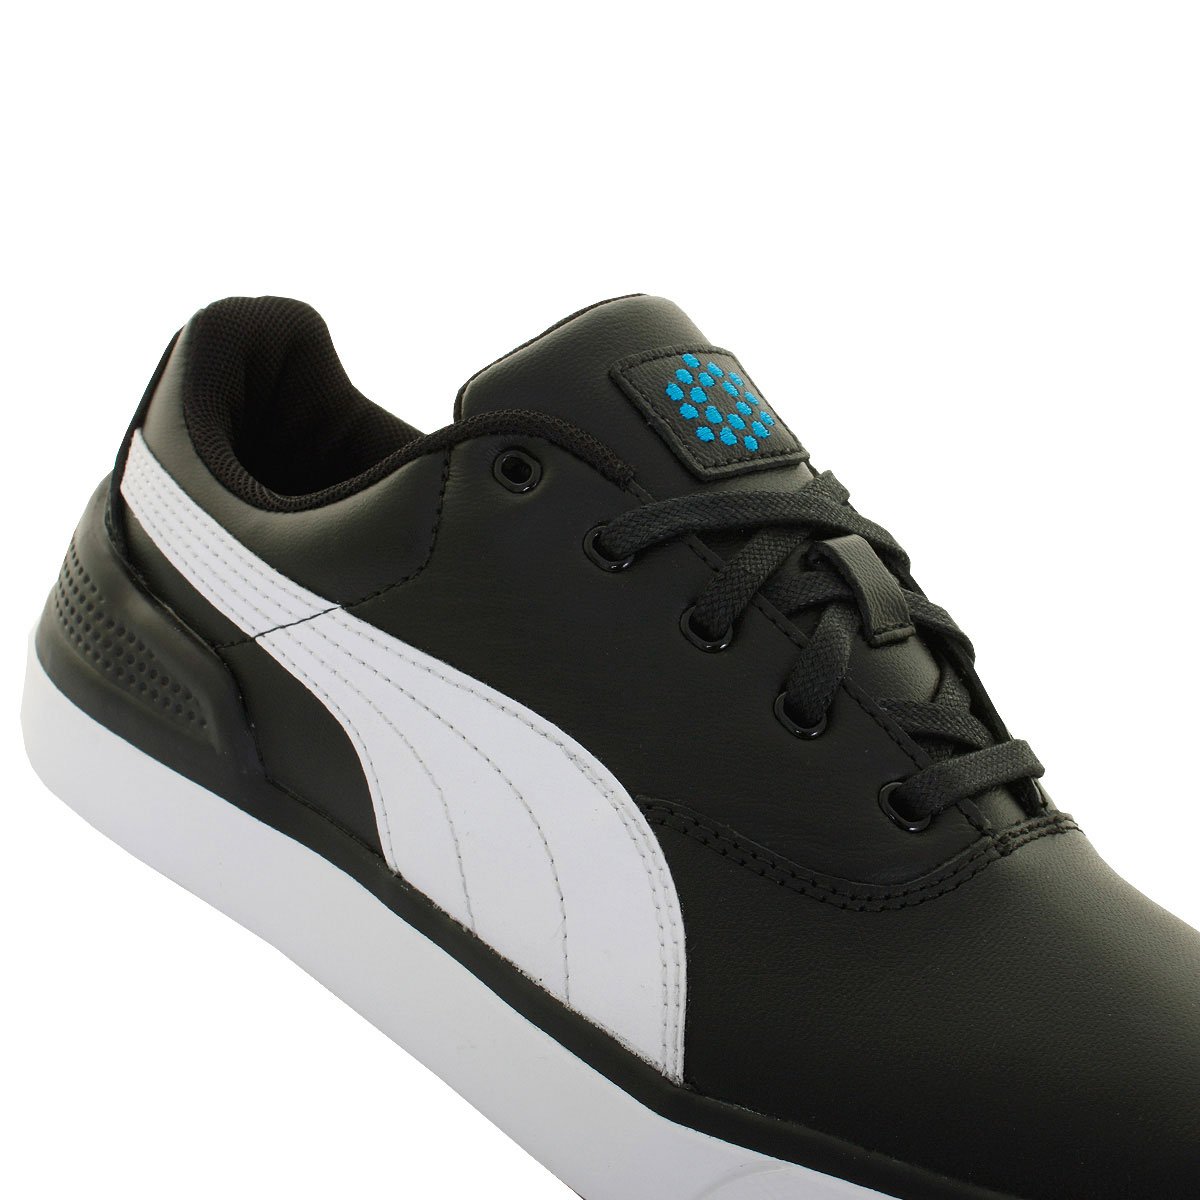 Puma-Golf-Mens-Monolite-2-0-Golf-Shoes-Spikeless-Waterproof-Leather-50-OFF-RRP thumbnail 7